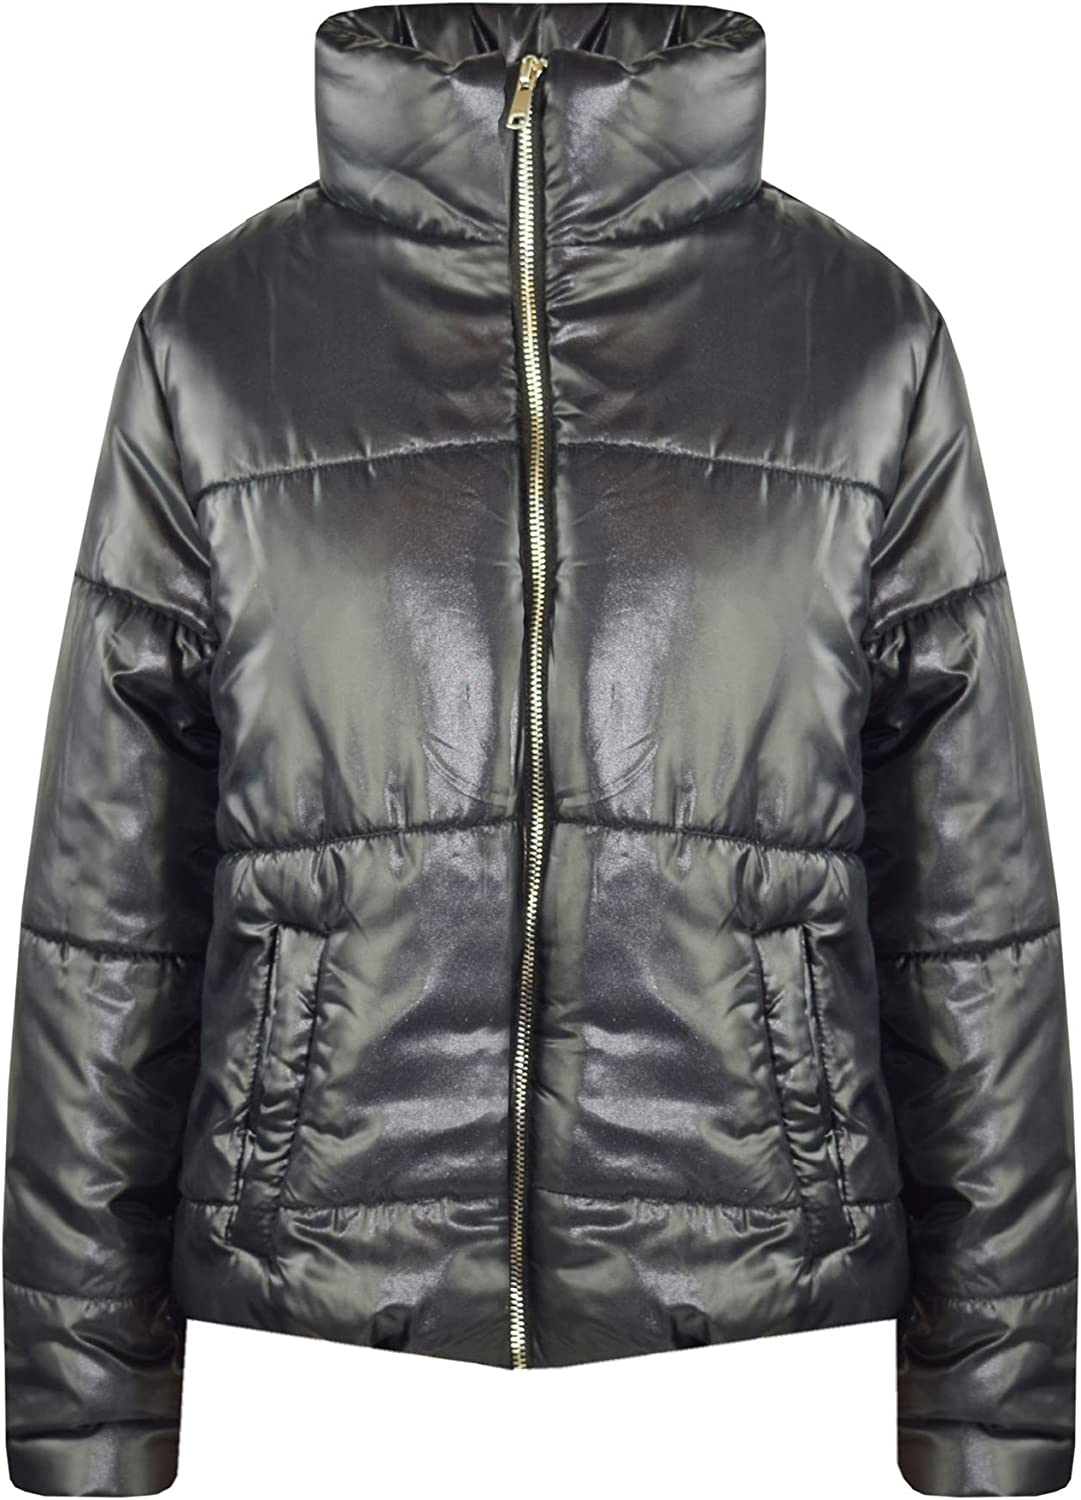 Girls Jacket Kids Black Wetlook Cropped Padded Quilted Puffer Jackets Coat 5-13Y